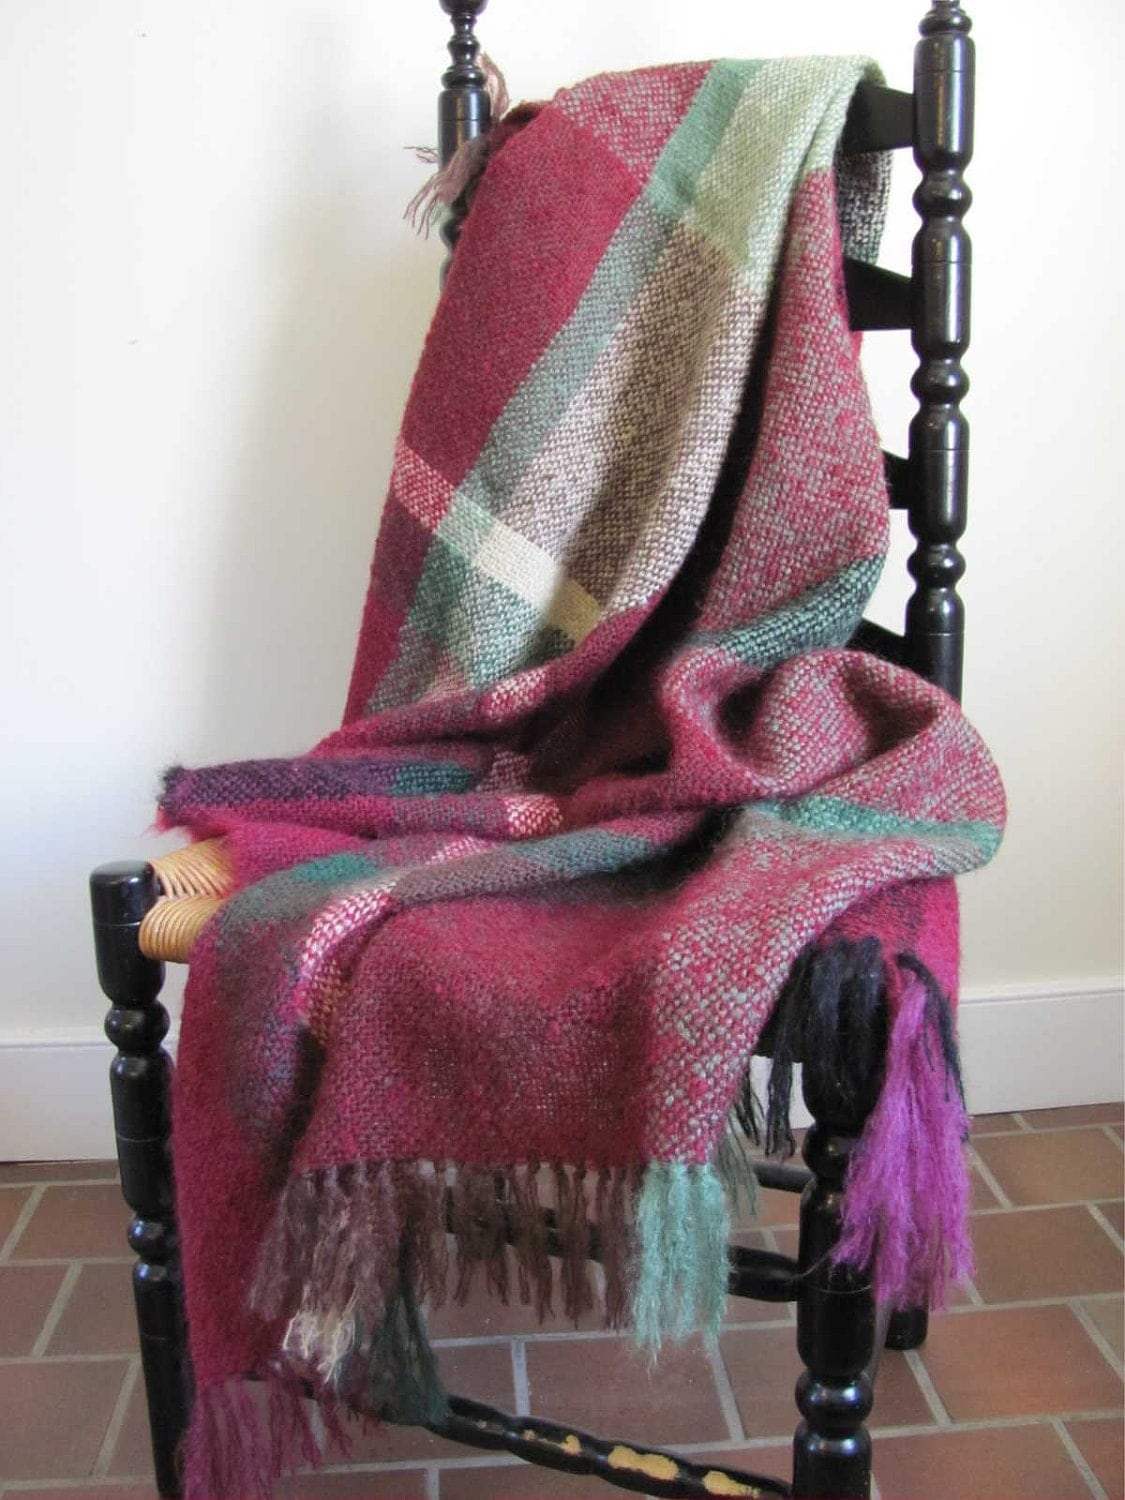 Modern Rustic Country Home Decor Plaid Mohair Blanket Cozy